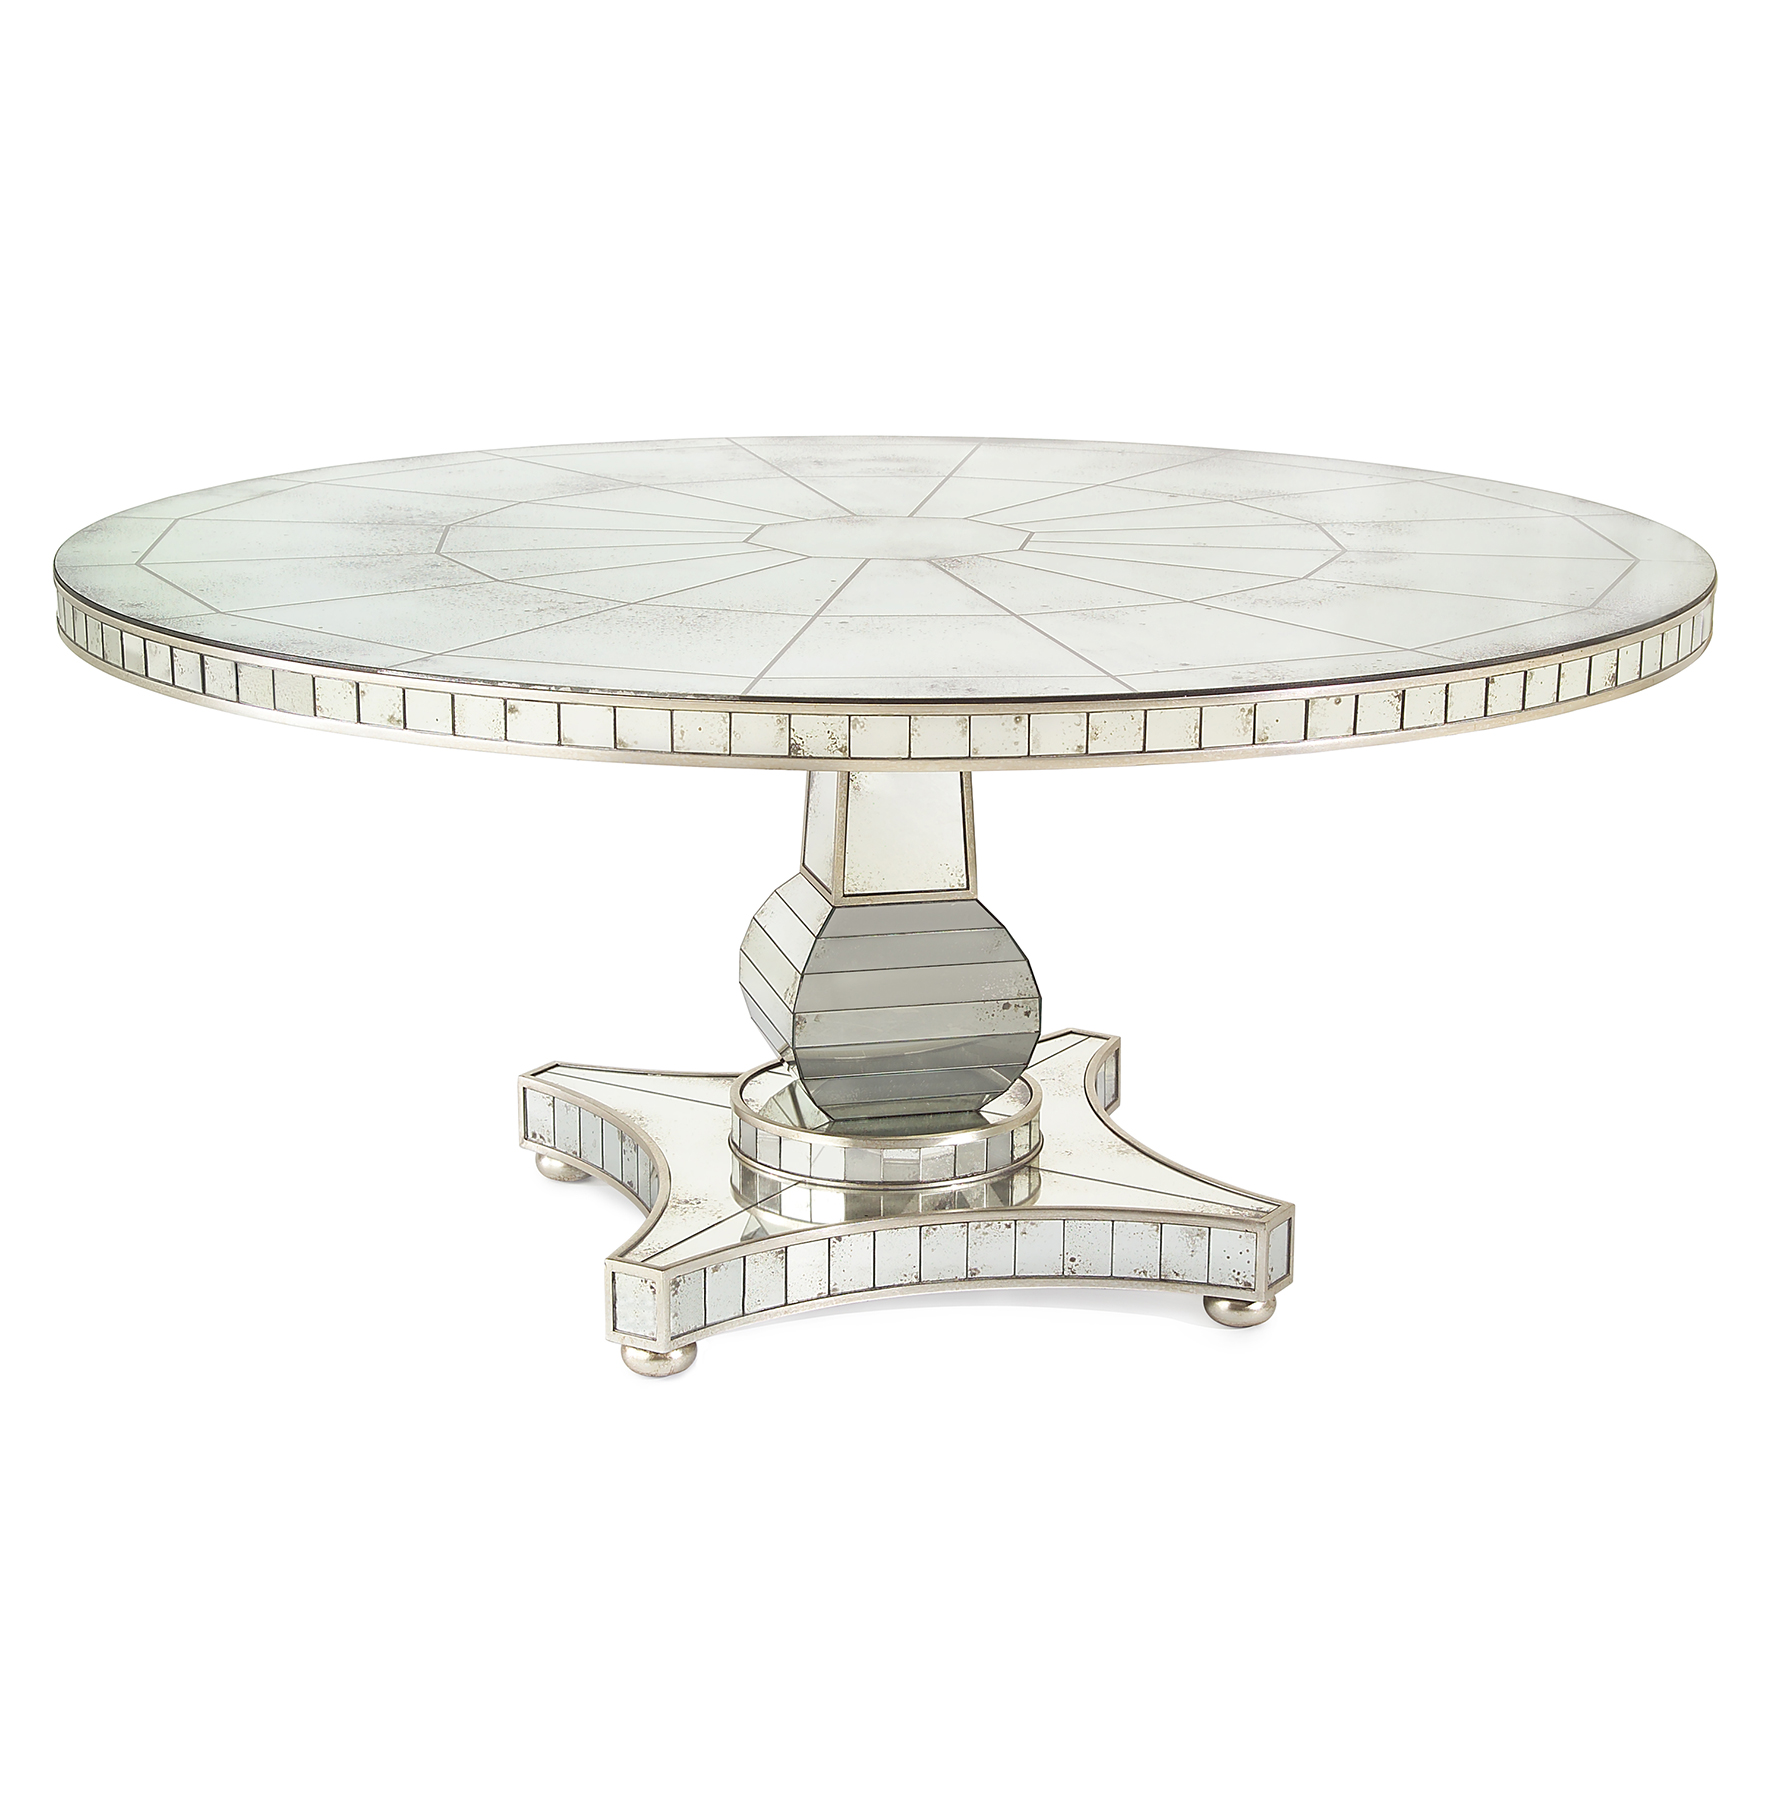 Millie Hollywood Regency Antique Mirror Silver Round Dining Table